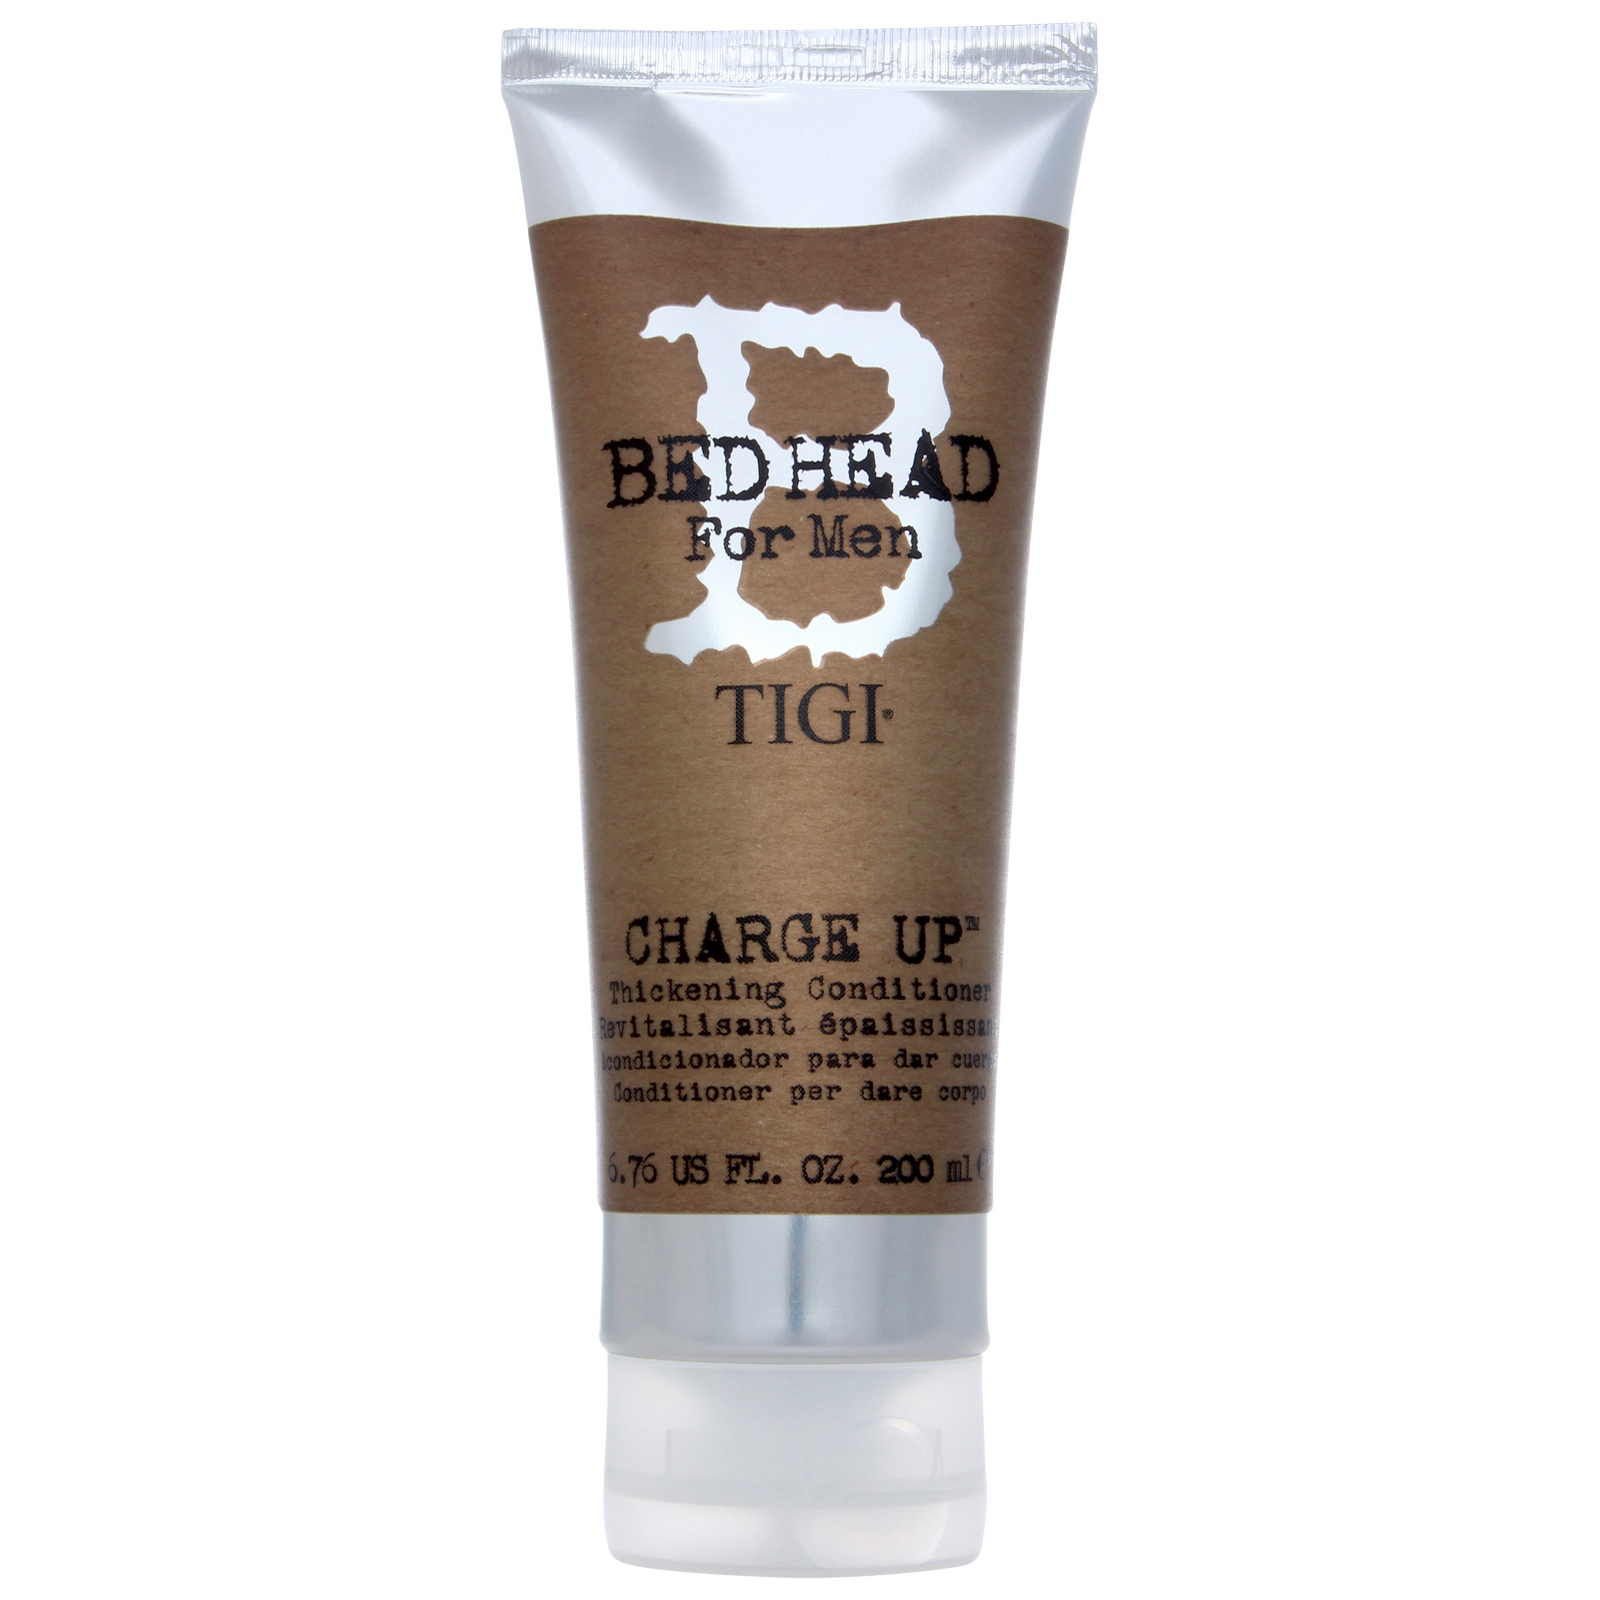 Tigi Bed Head For Men Wash And Care Charge Up Thickening